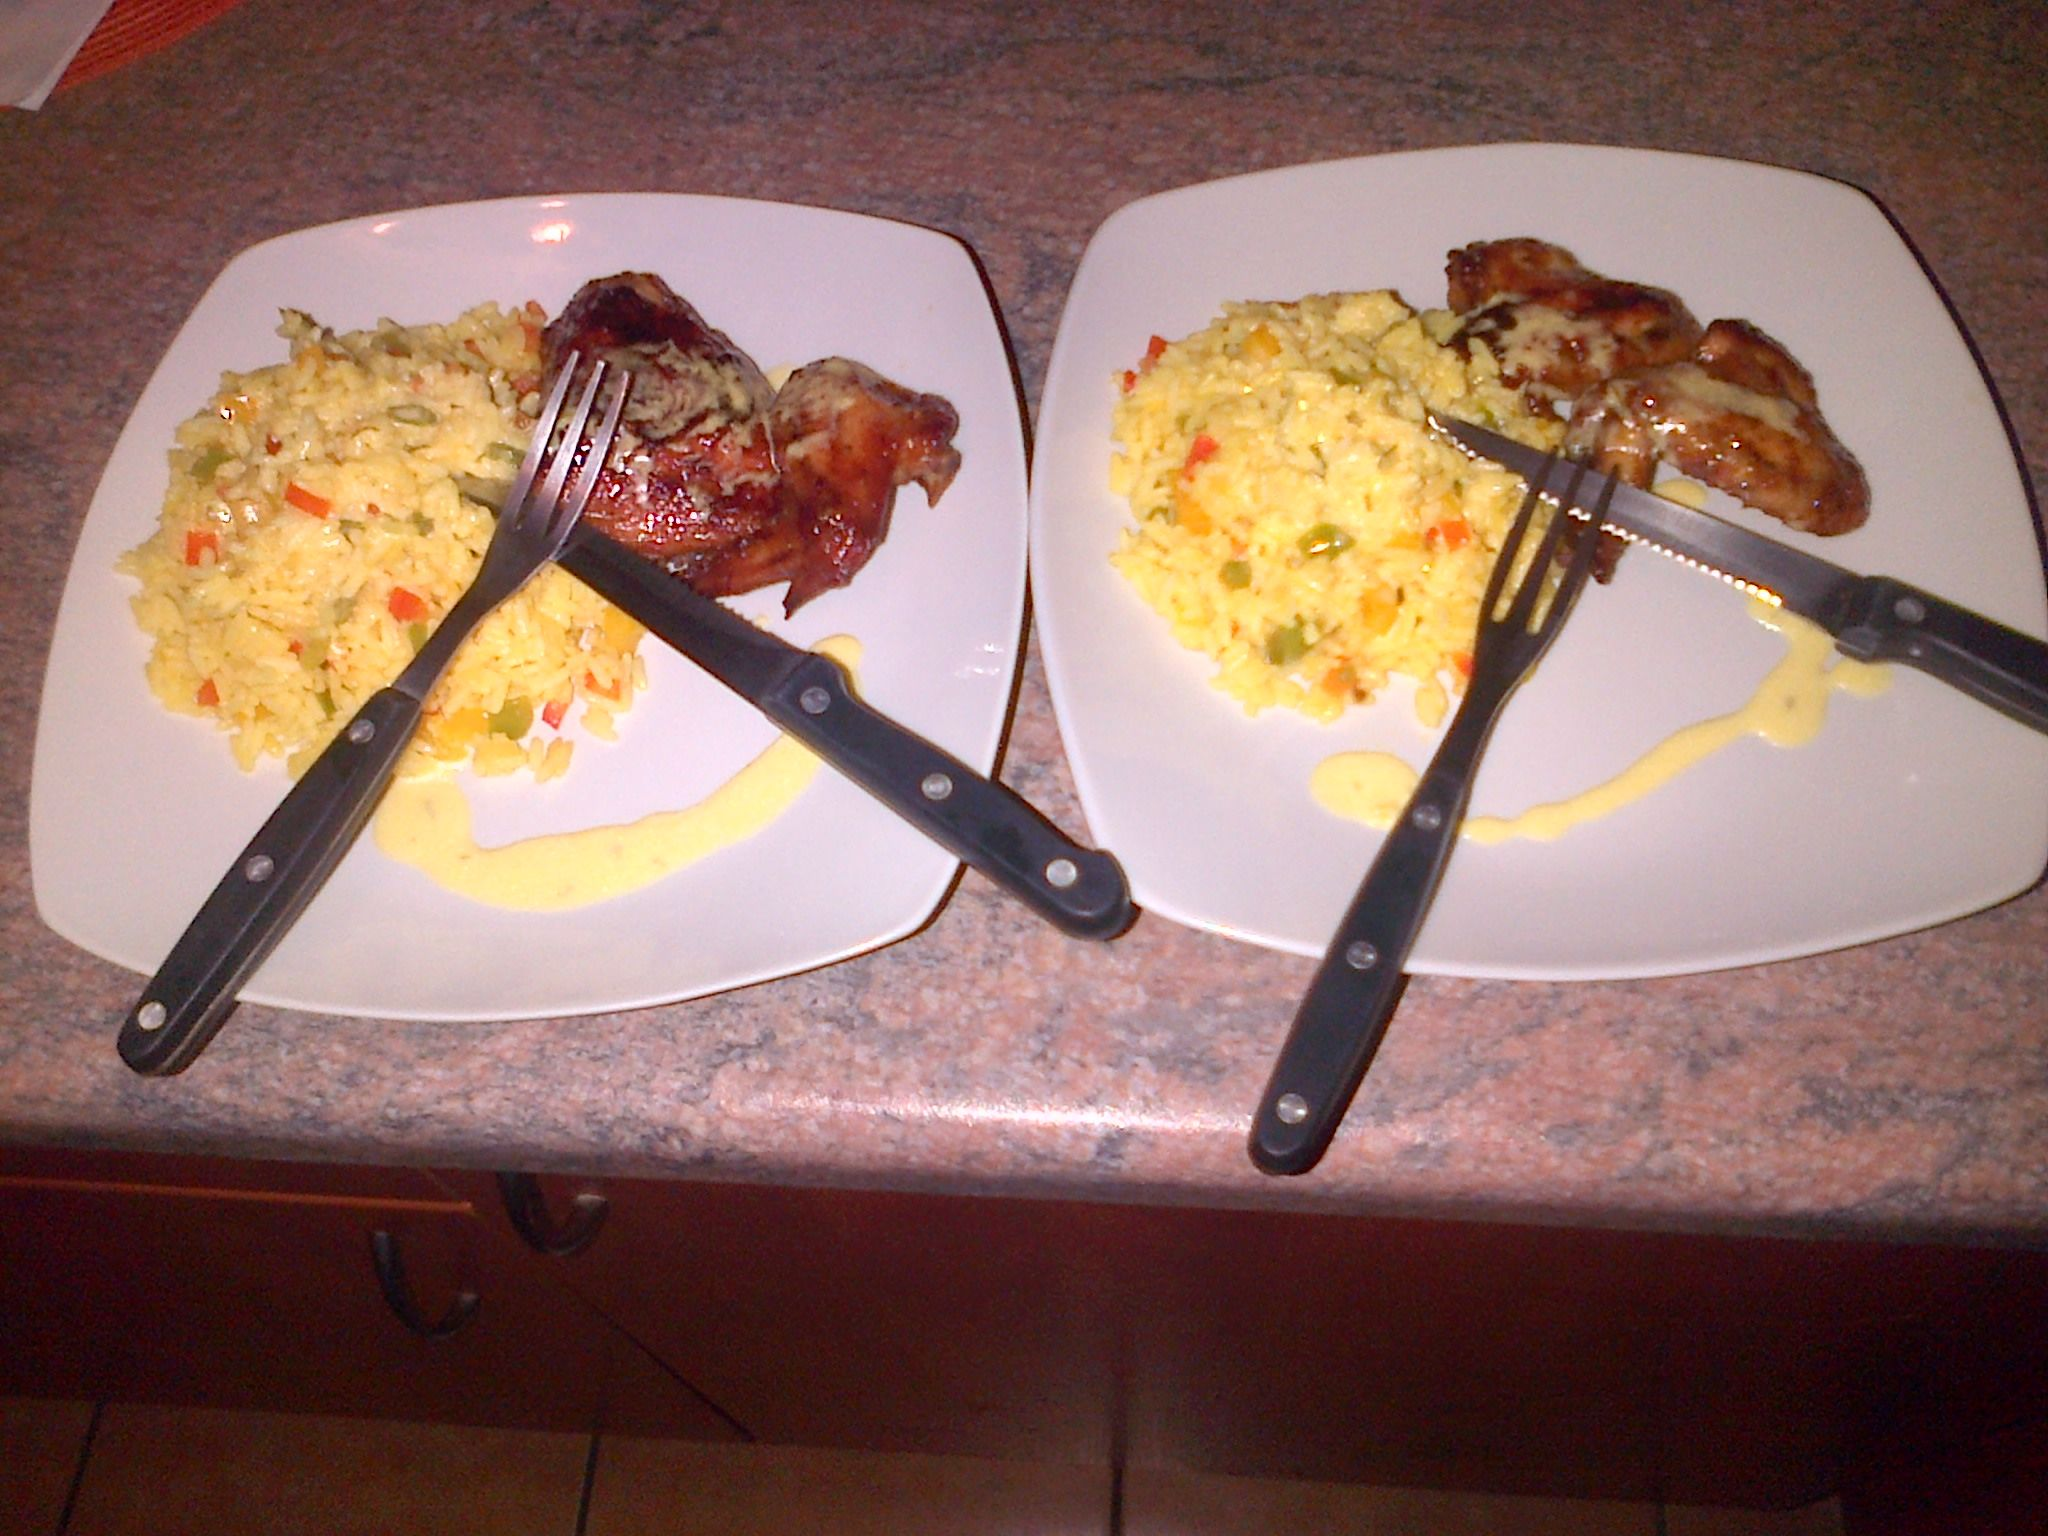 BBQ Chicken and savoury rice with lemon butter sauce